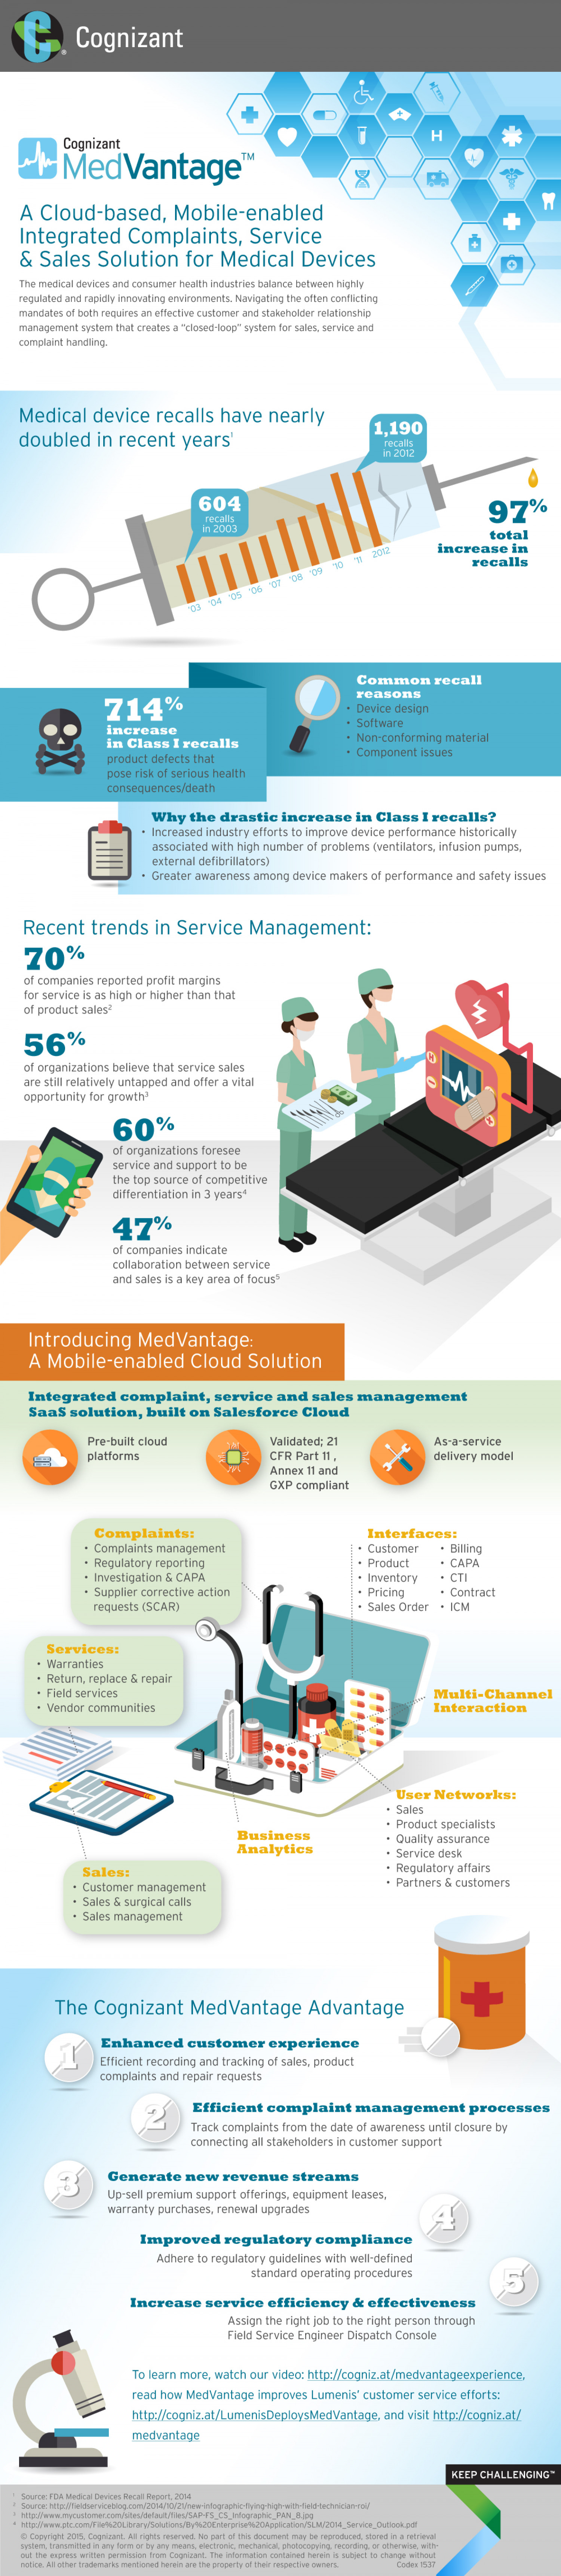 MedVantage™: Scale with Cloud-Enabled Complaints, Service and Sales Management for the Medical Device Industry Infographic